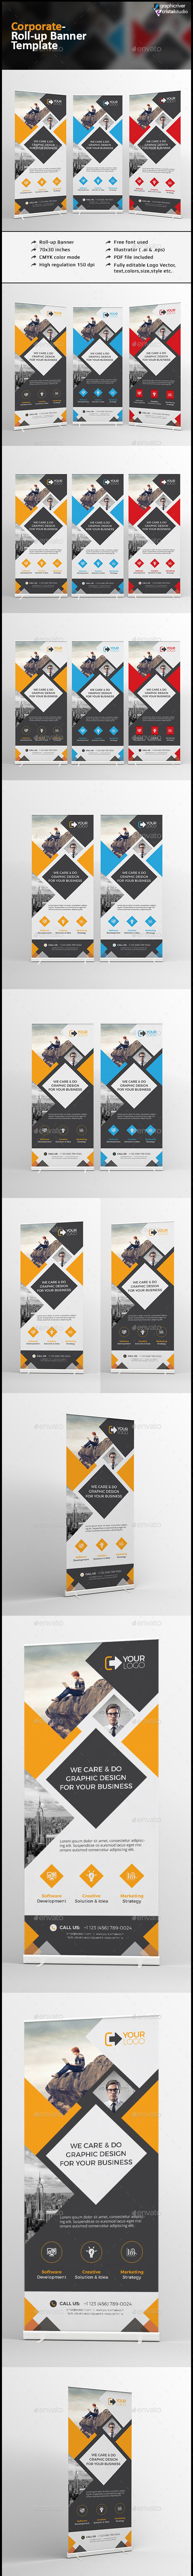 Roll-up Banner-Multipurpose - Signage Print Templates